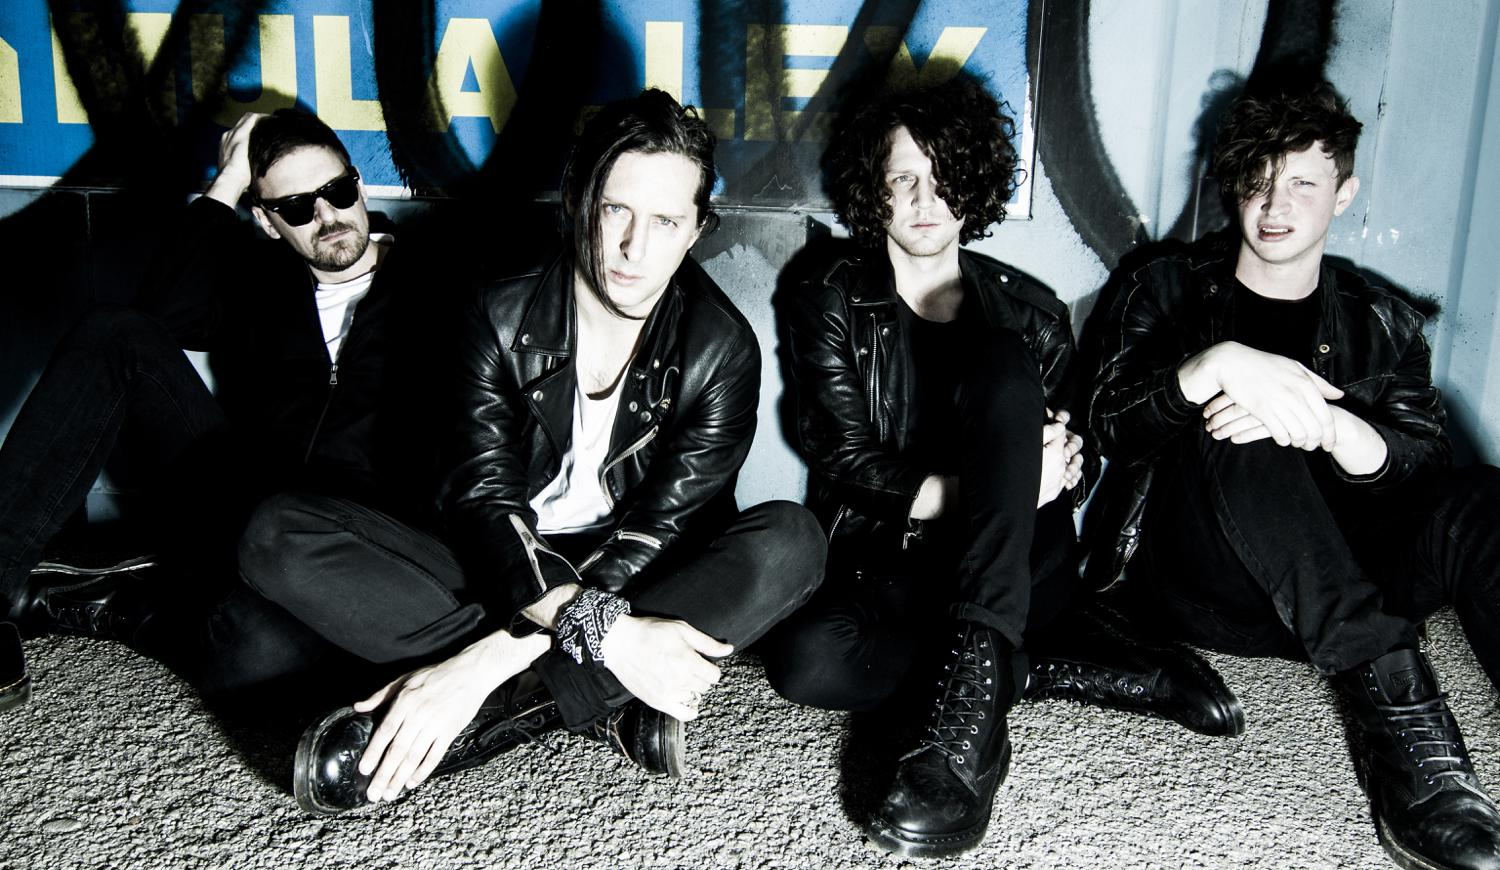 Carl Barât and The Jackals